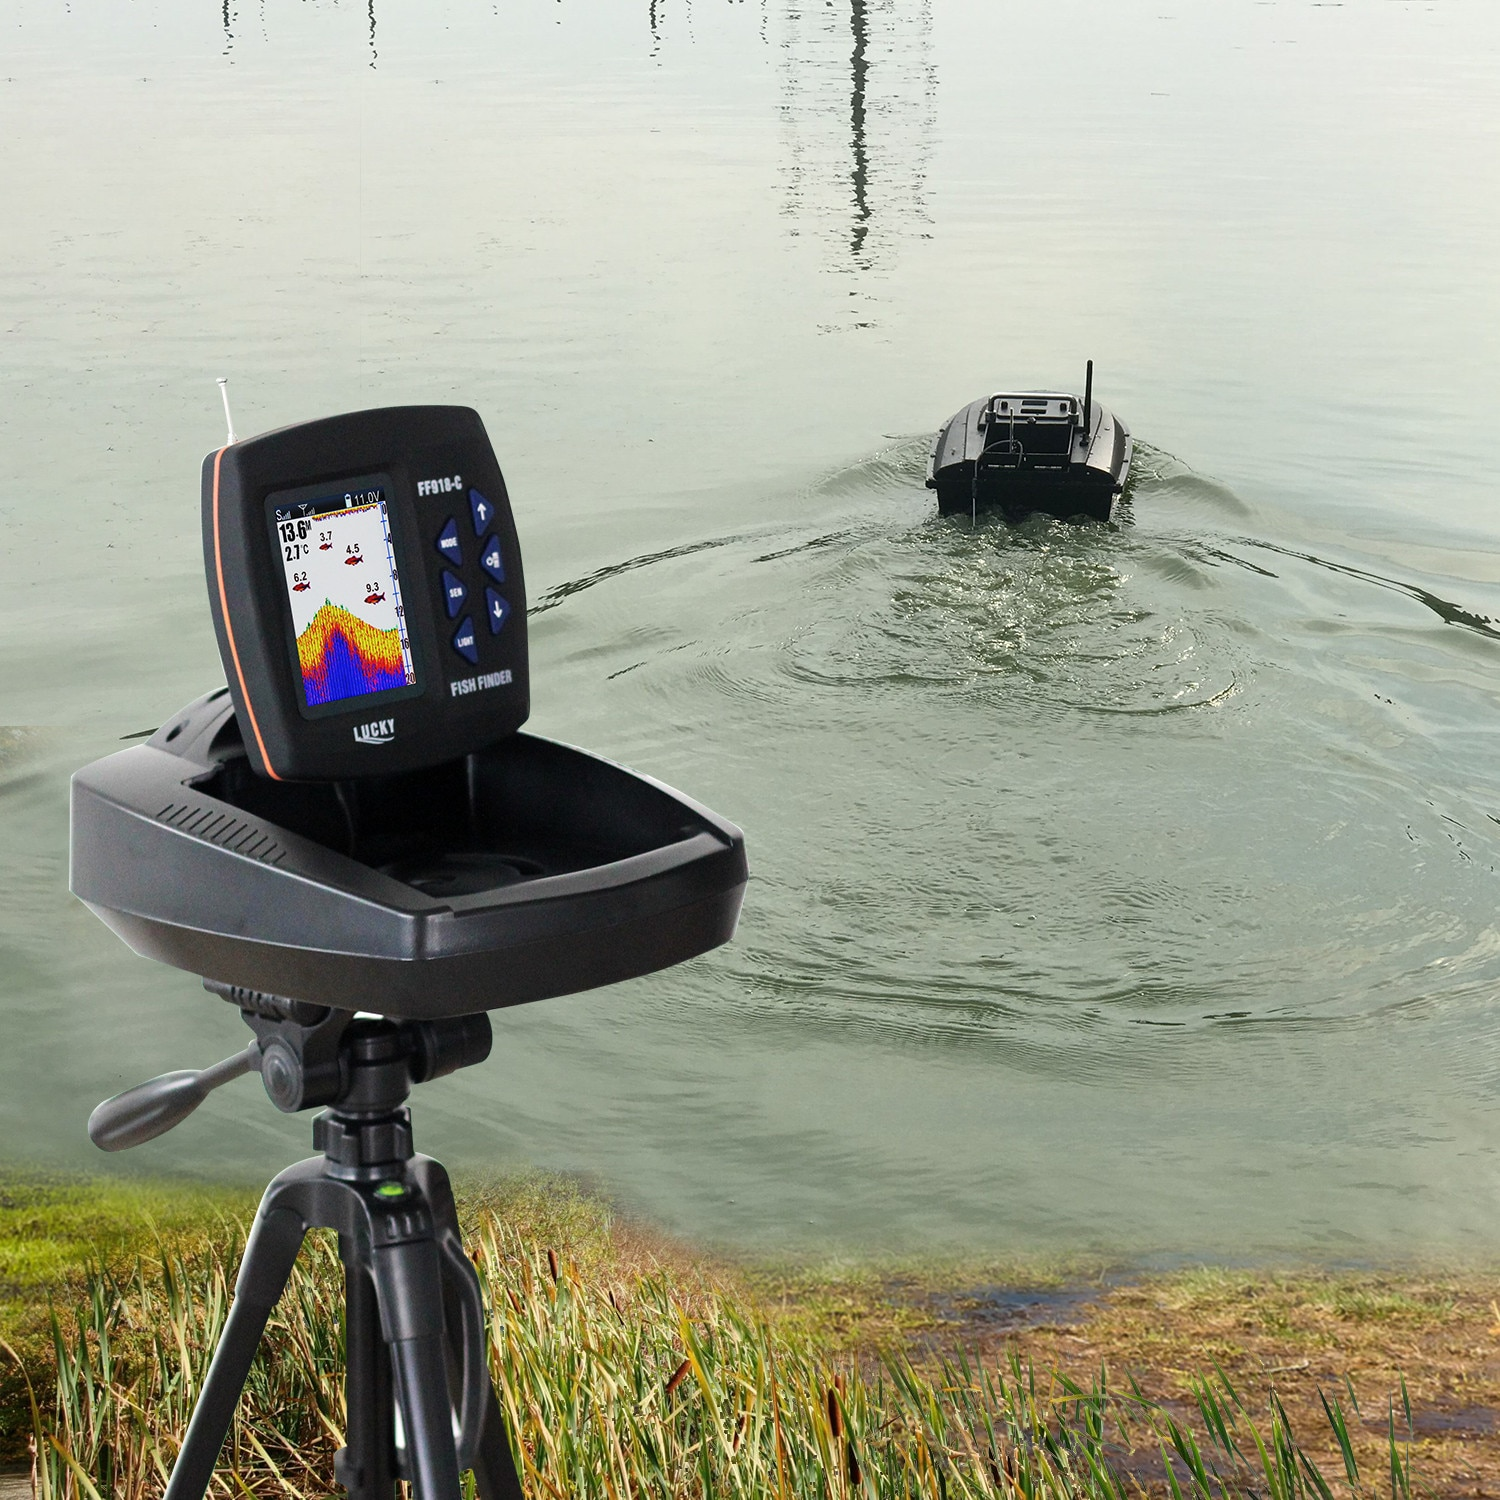 LUCKY FF918 Remote Control Bait Boat Fish Finder 3.5